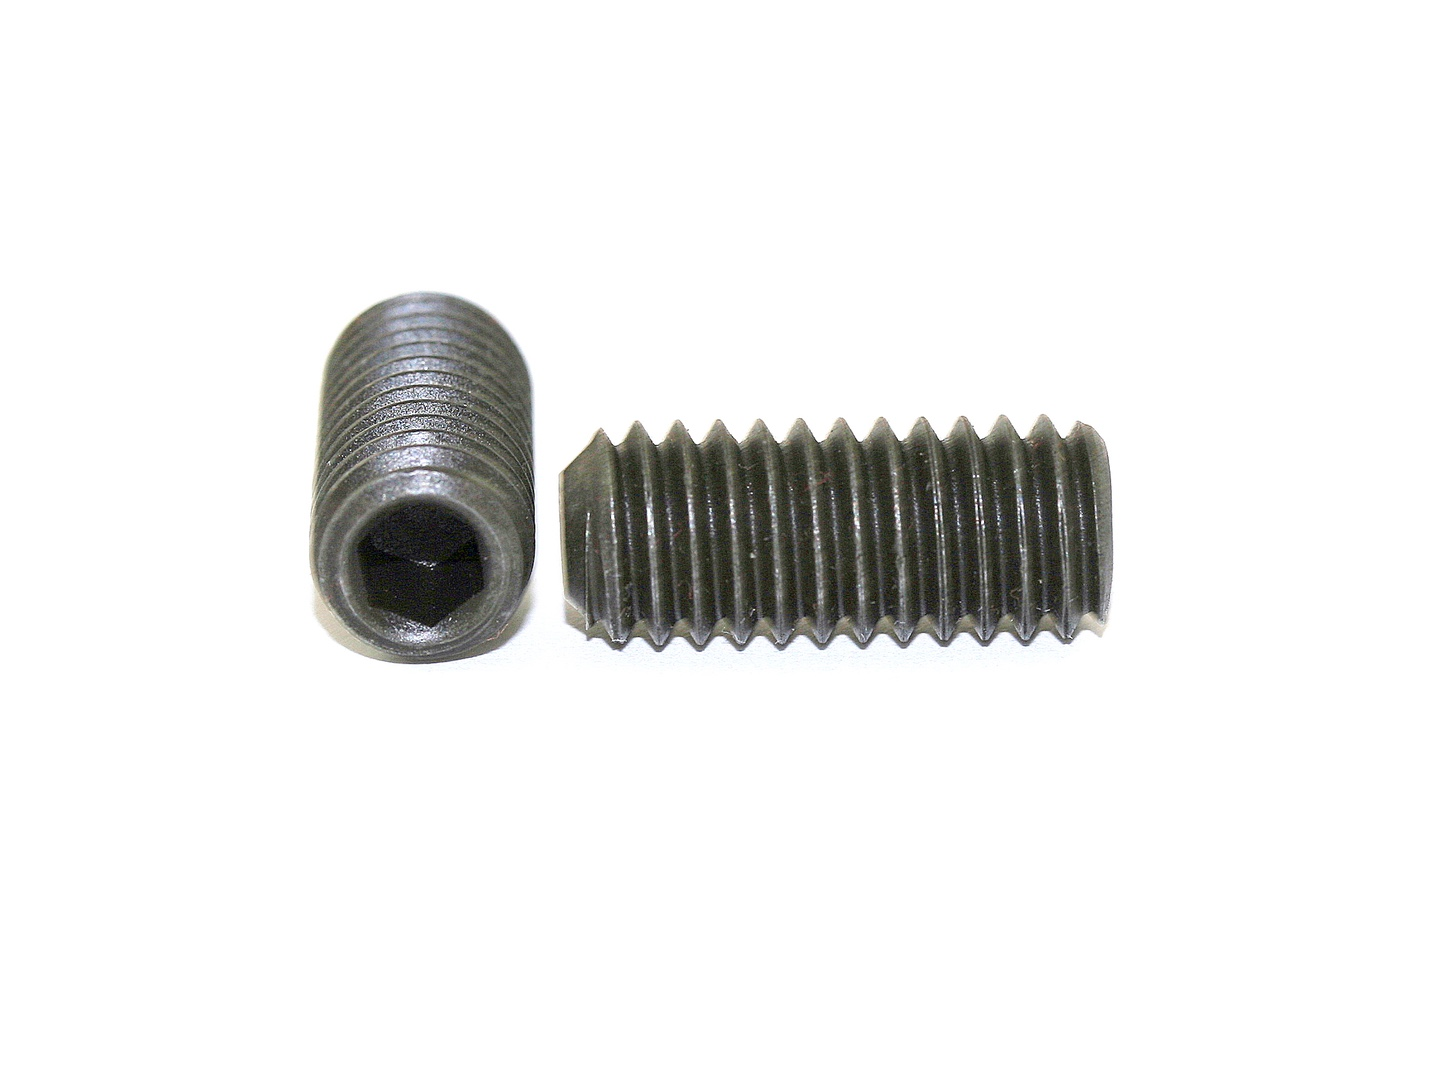 HEX SOCKET SET SCREW